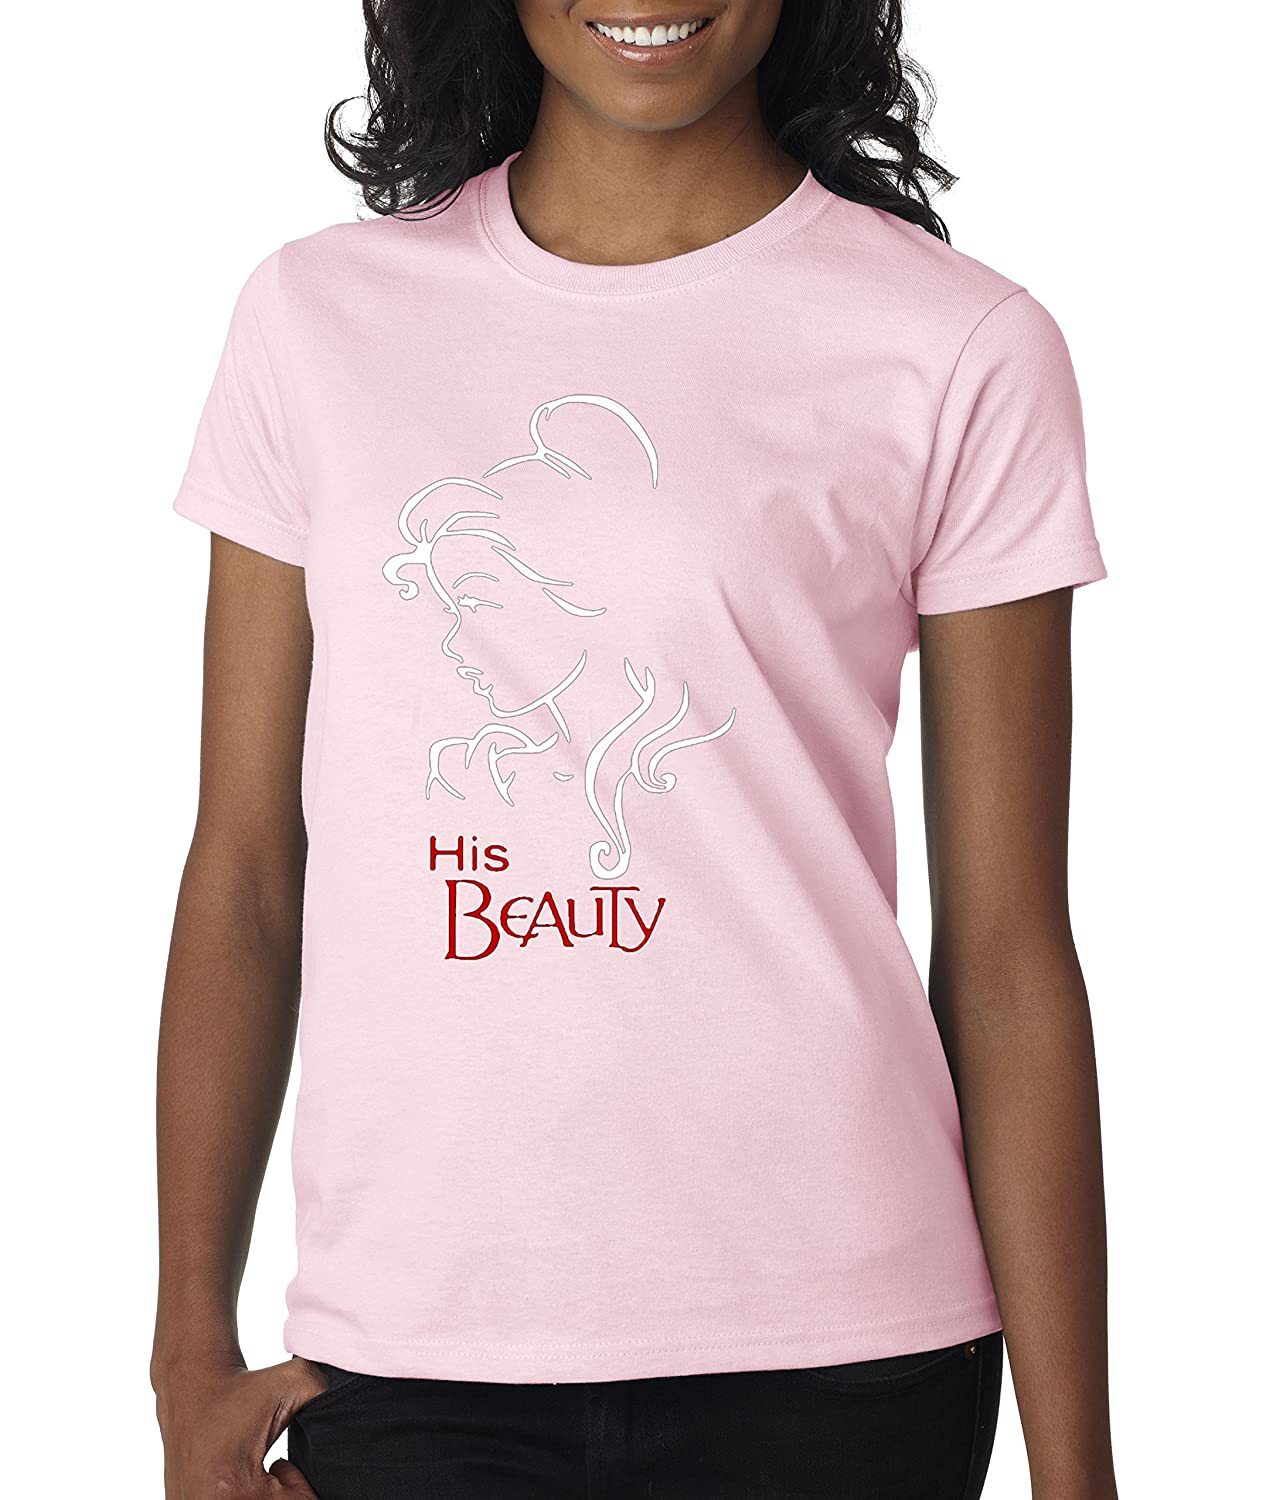 Light Pink Trendy USA 641  Women's TShirt Beauty Couples Belle and The Beast